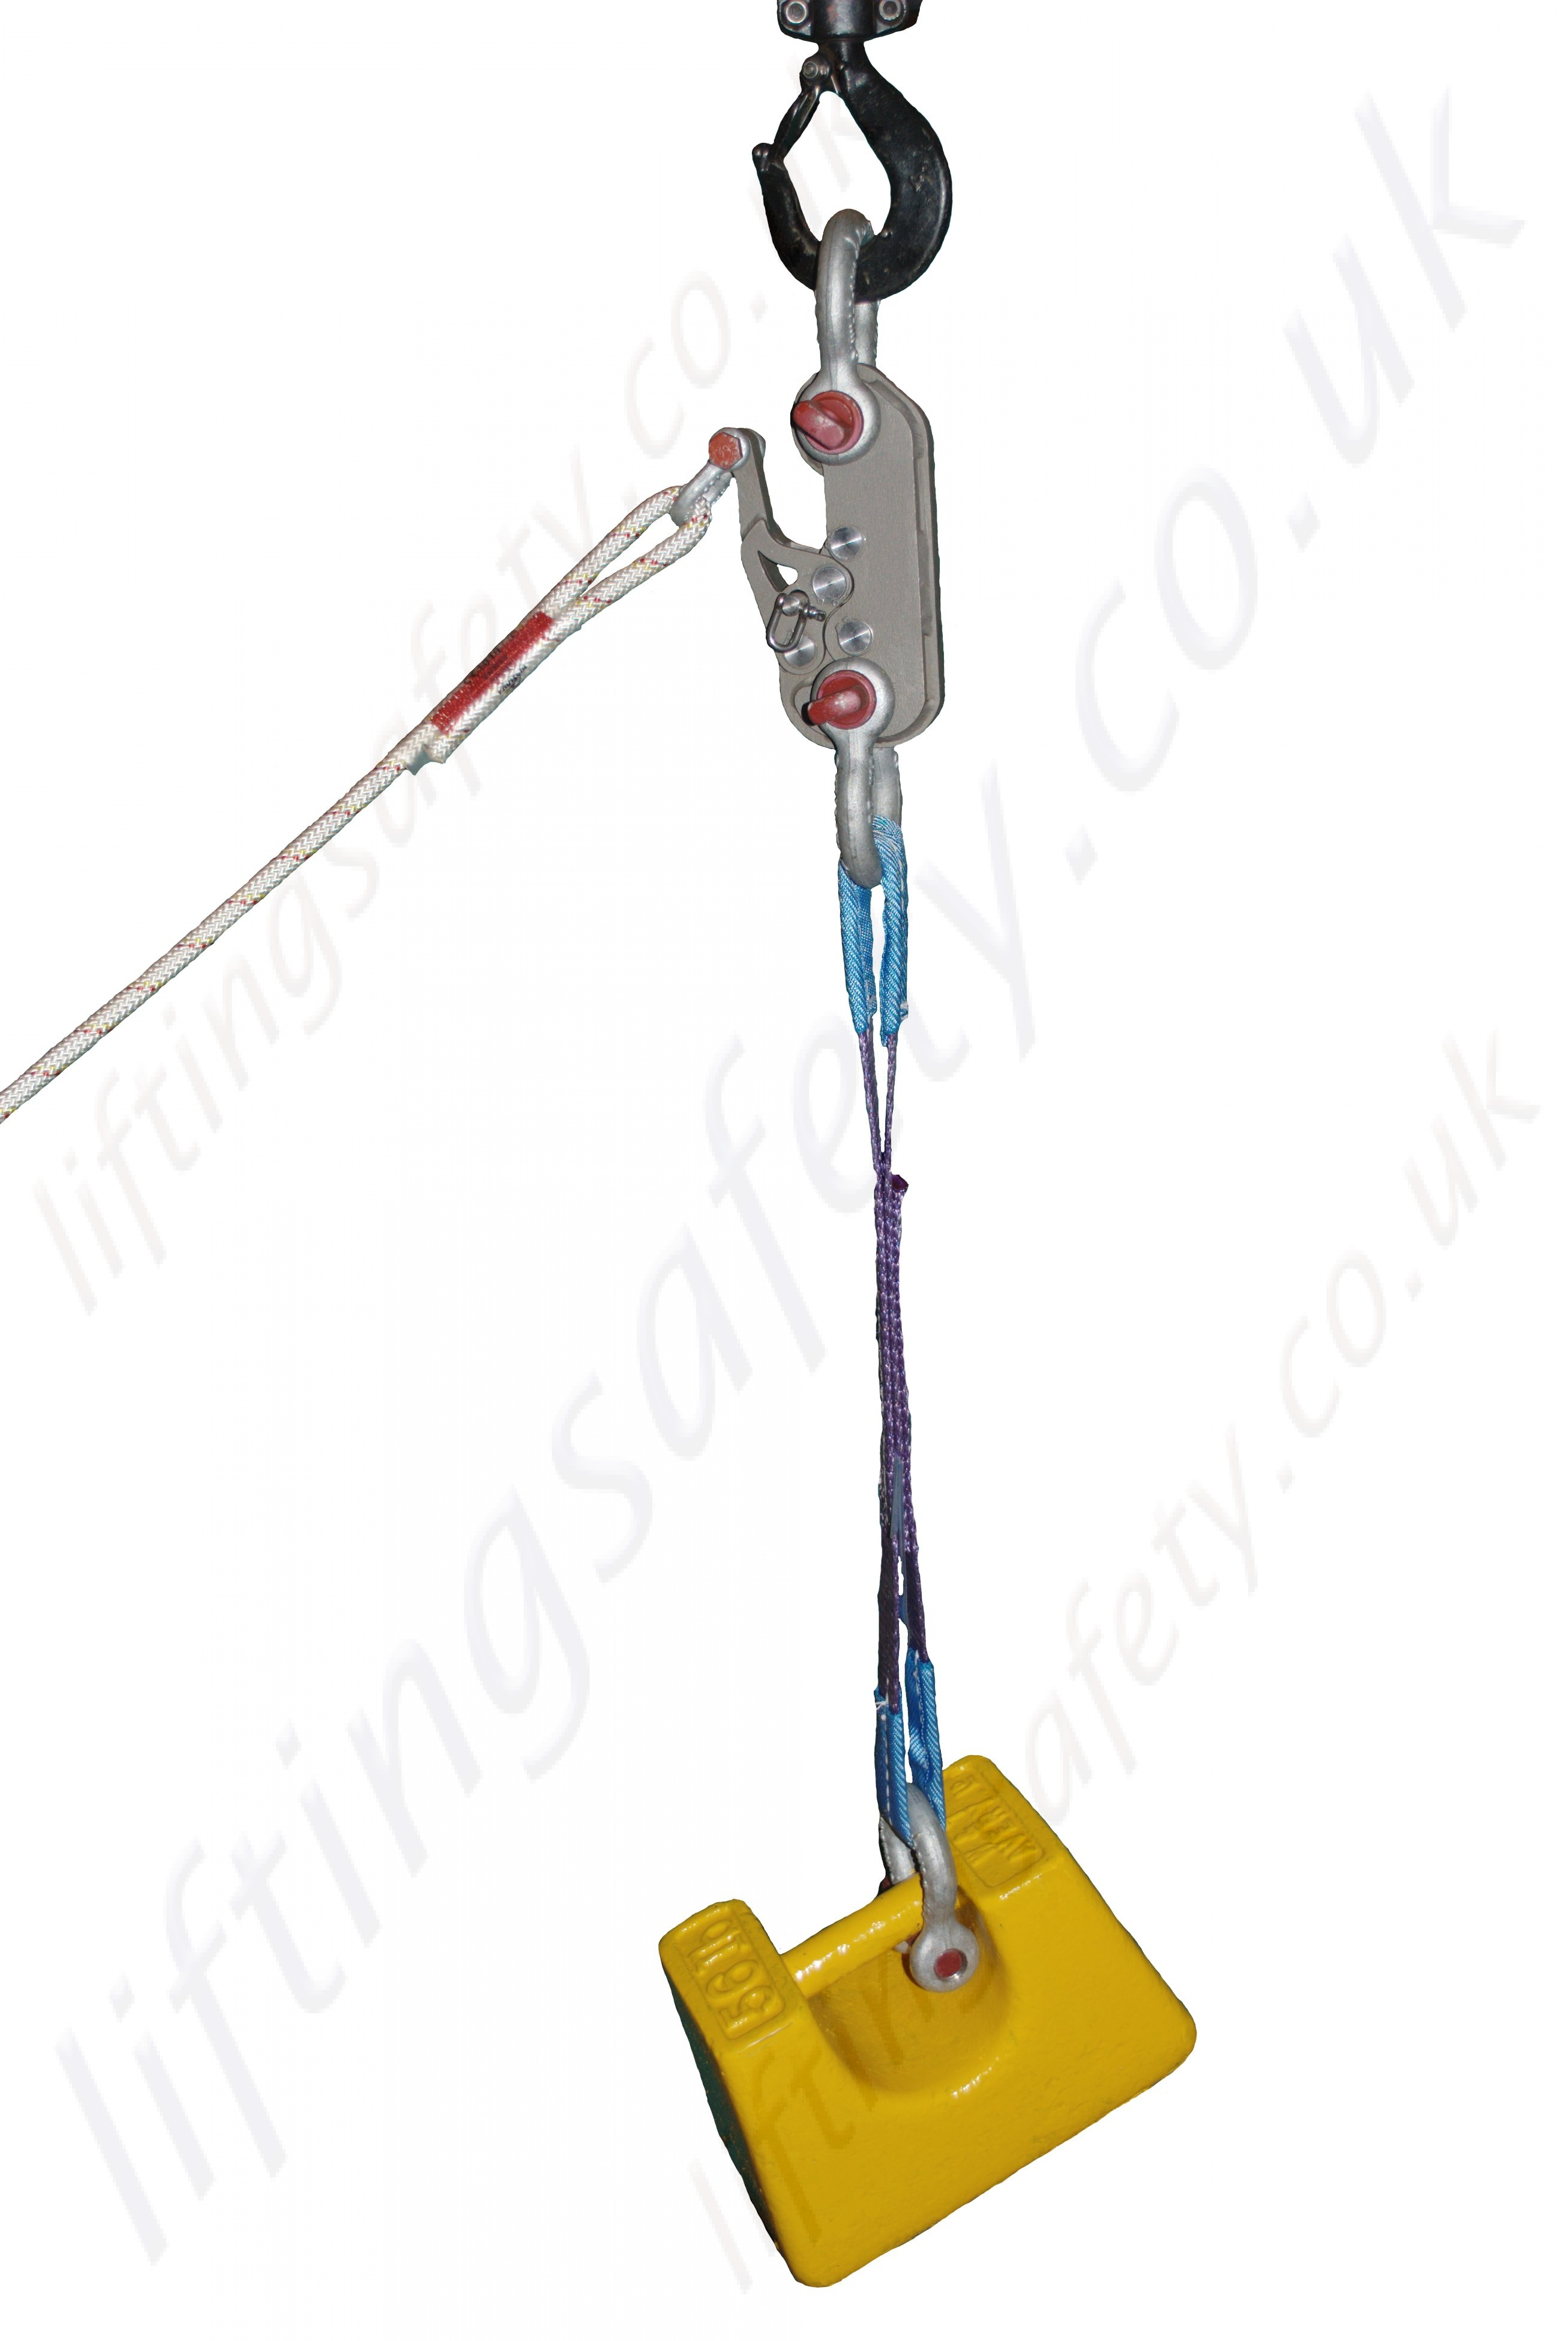 Liftingsafety quot load release remote hook clamp range